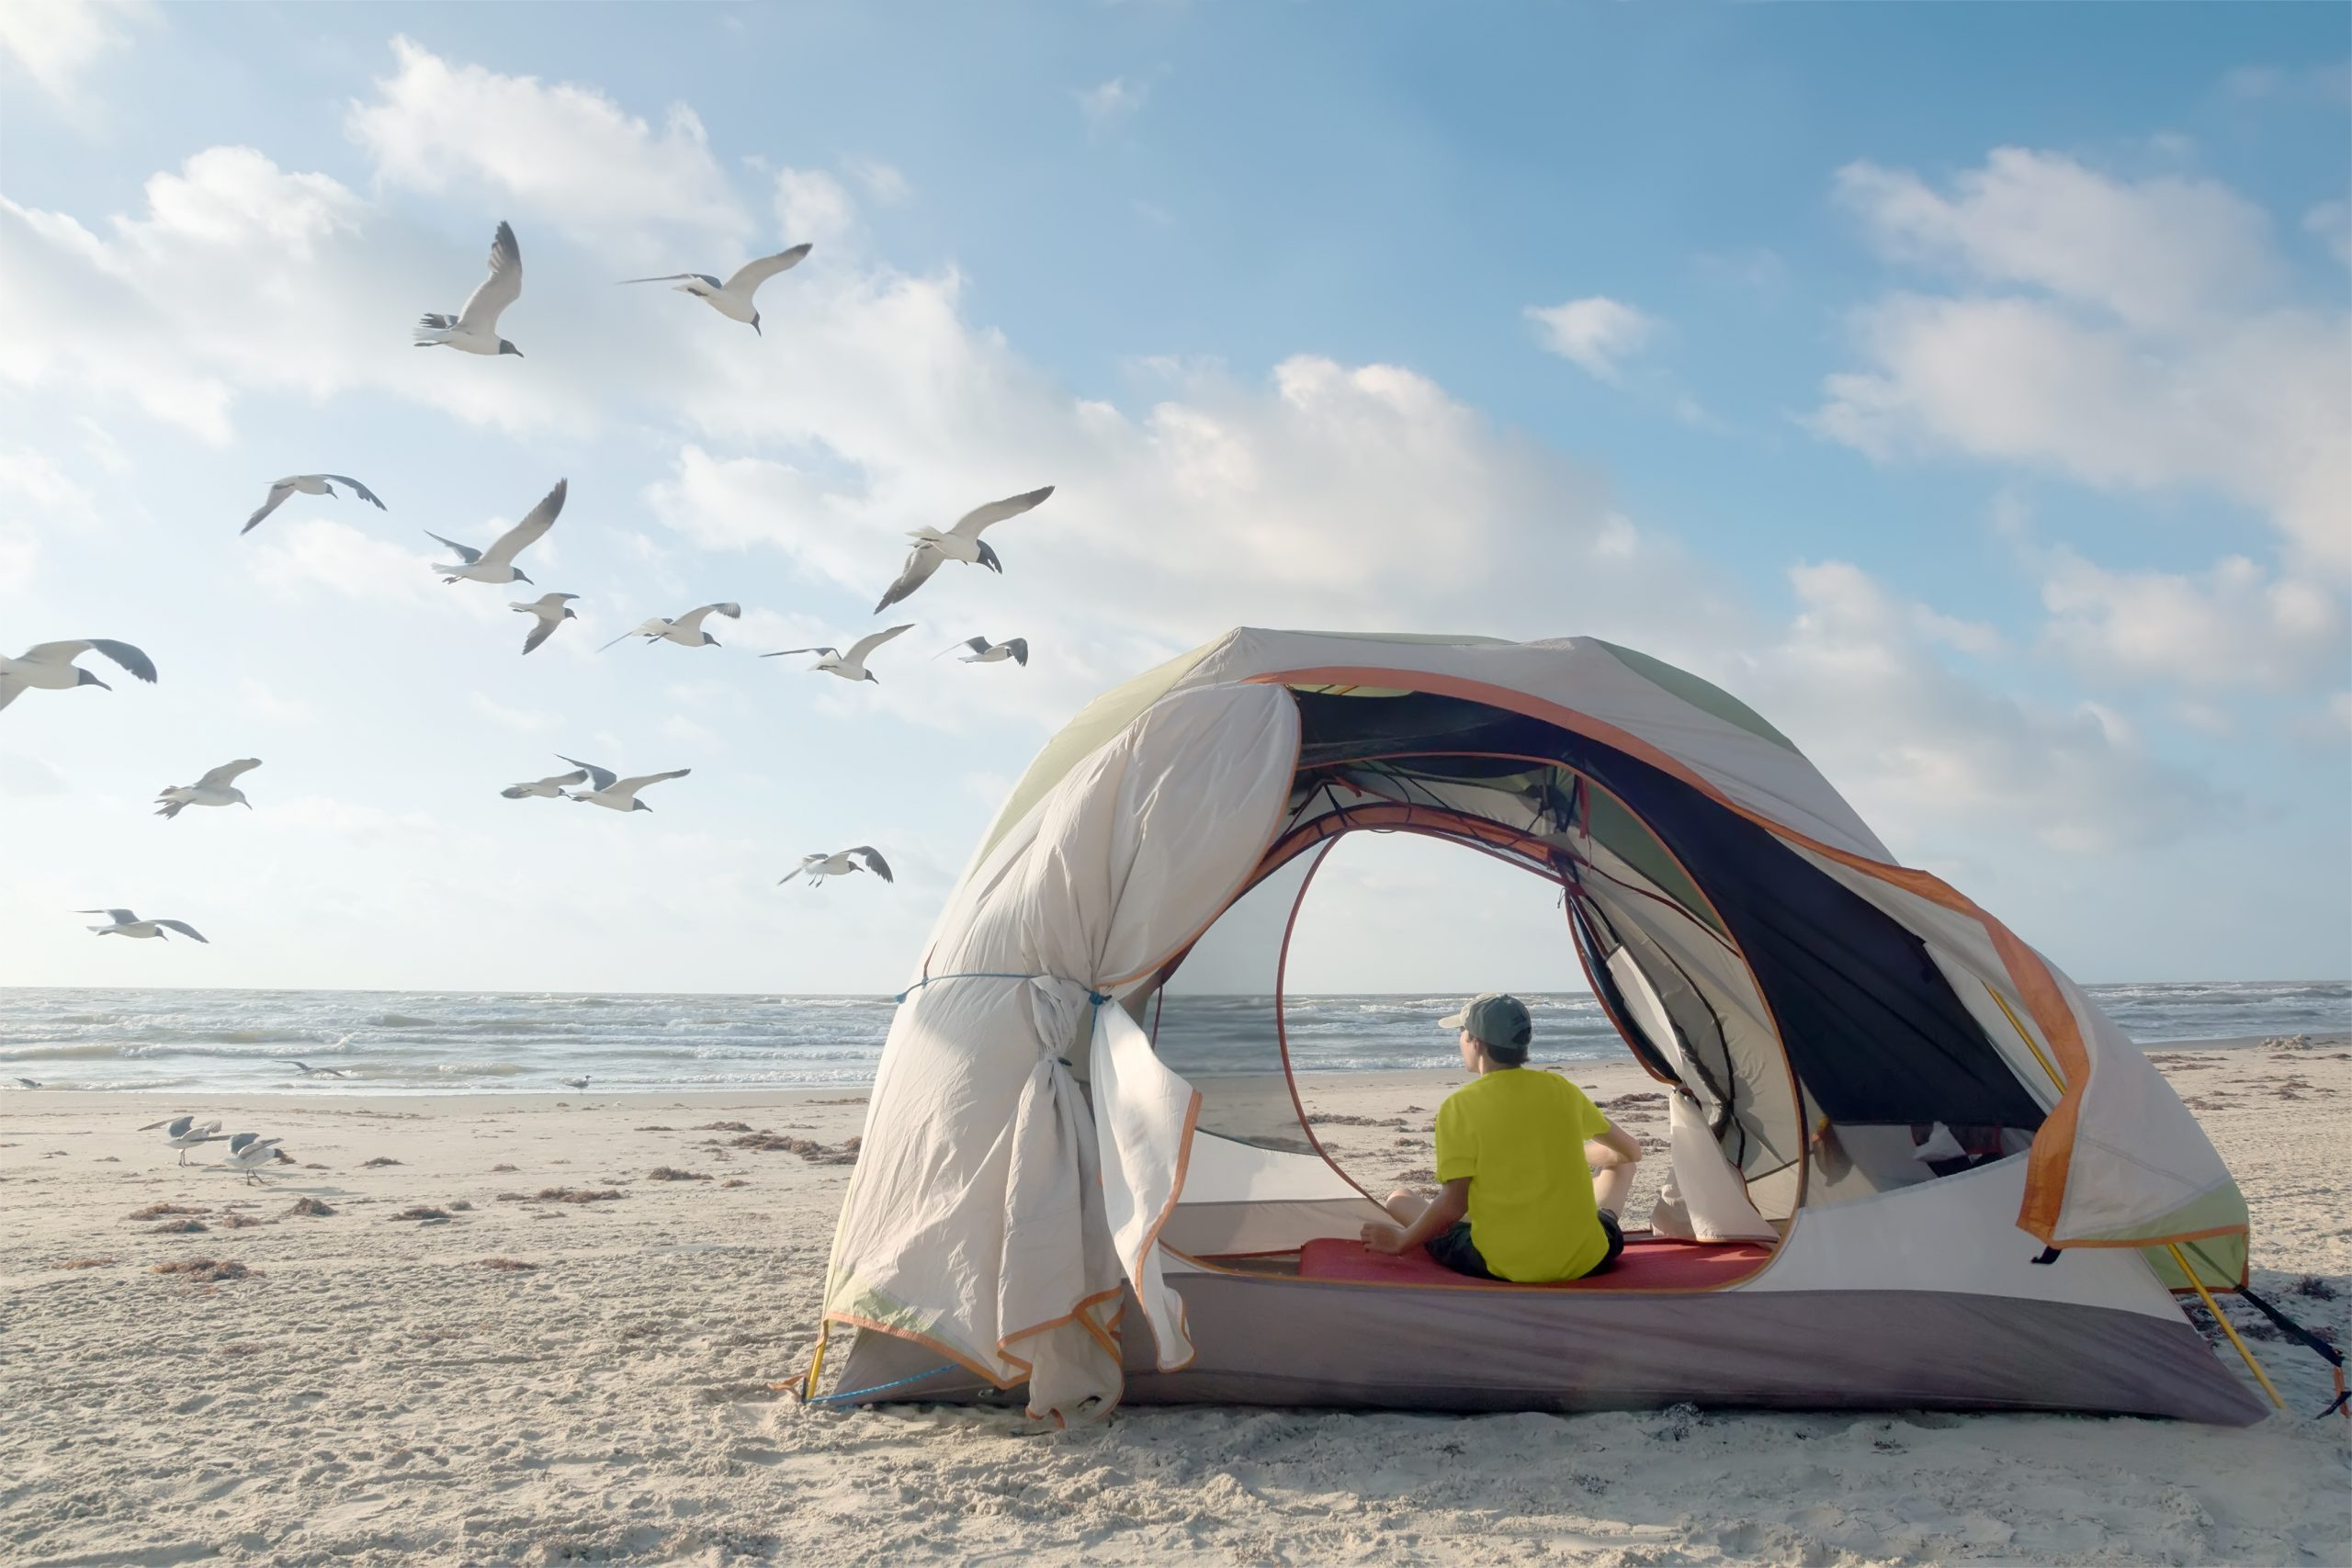 man in a tent on the beach on galveston island, one of the best parks for camping near houston texas